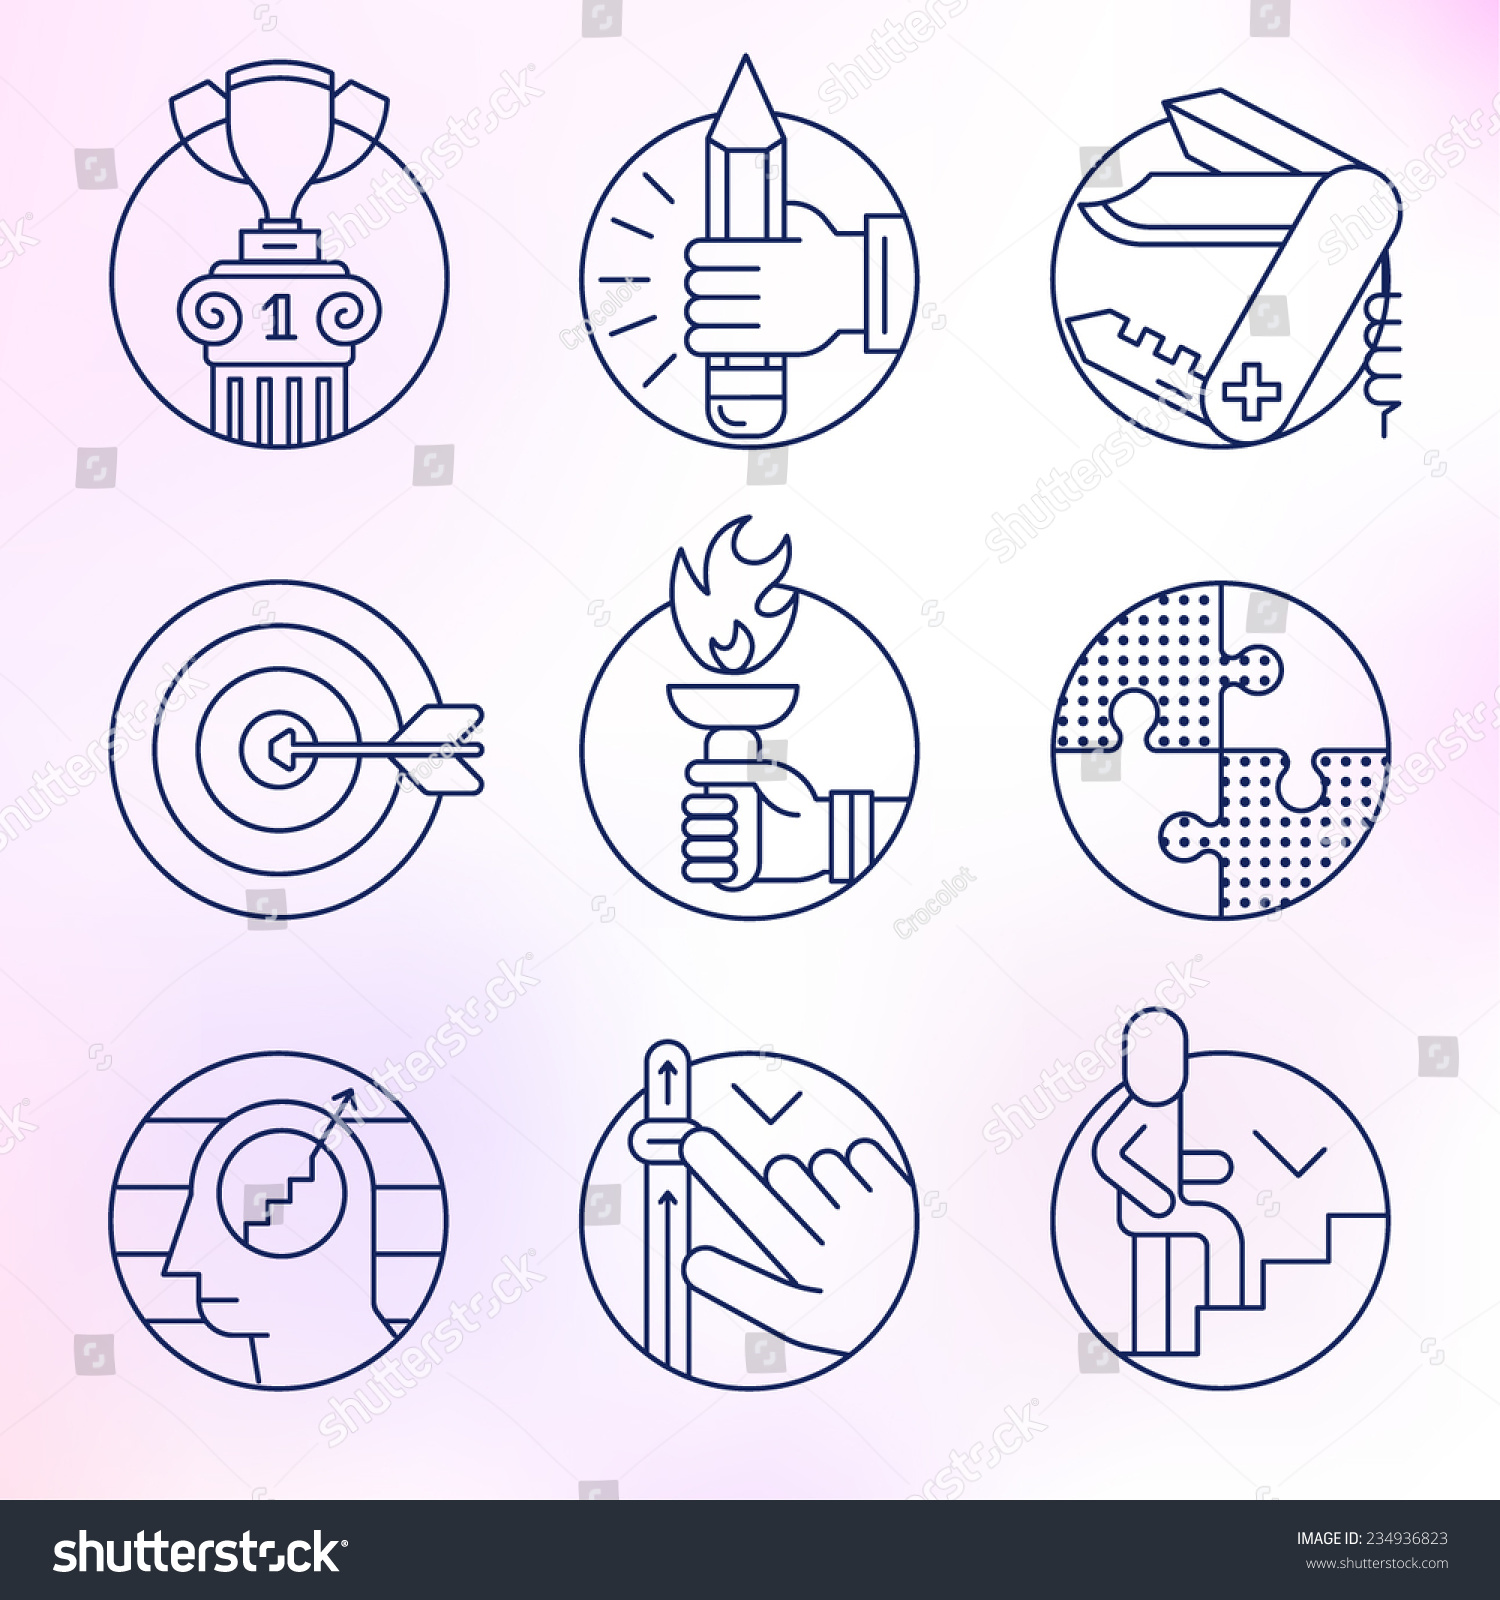 set round icons thin line skill stock vector shutterstock set of round icons thin line skill training ability achievement